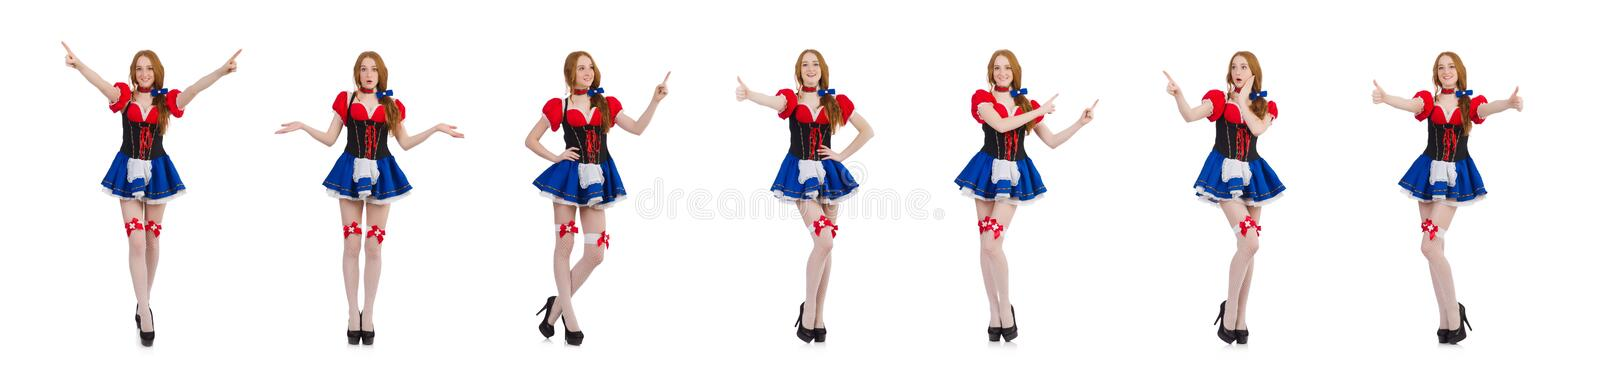 Woman waitress in octoberfest concept royalty free stock images